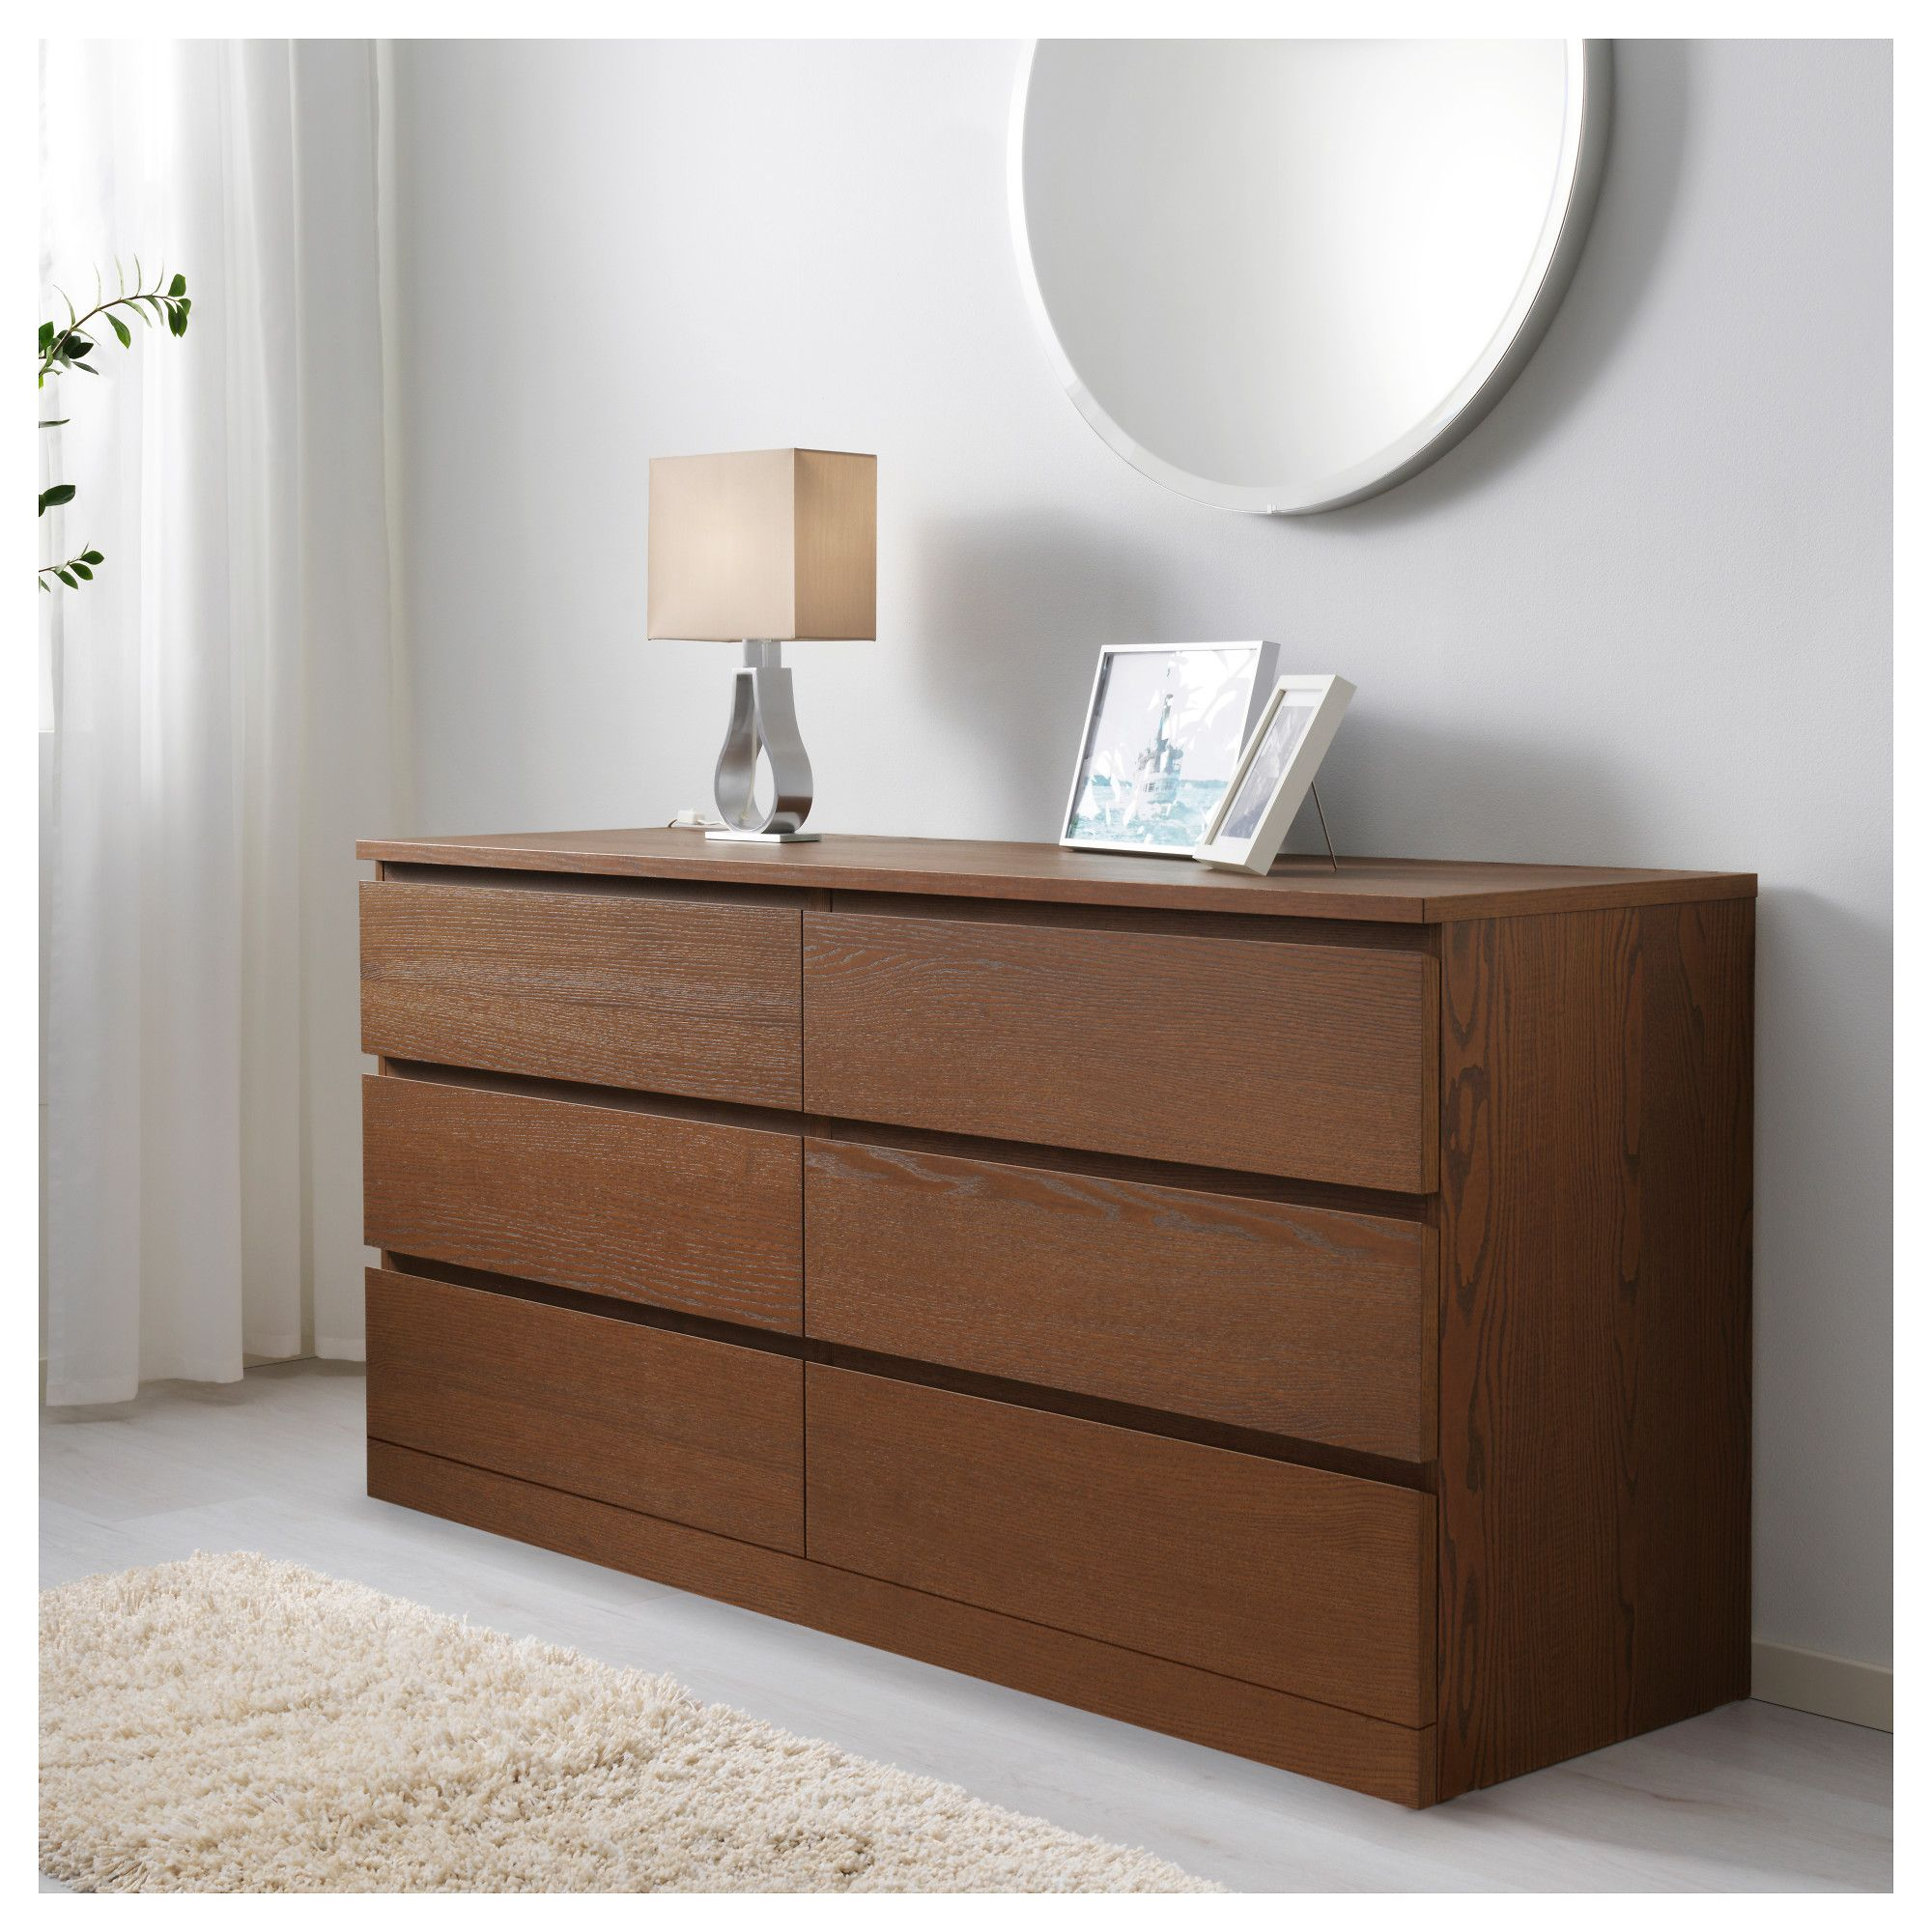 Ikea Malm 6 Drawer Dresser Brown Stained Ash Veneer